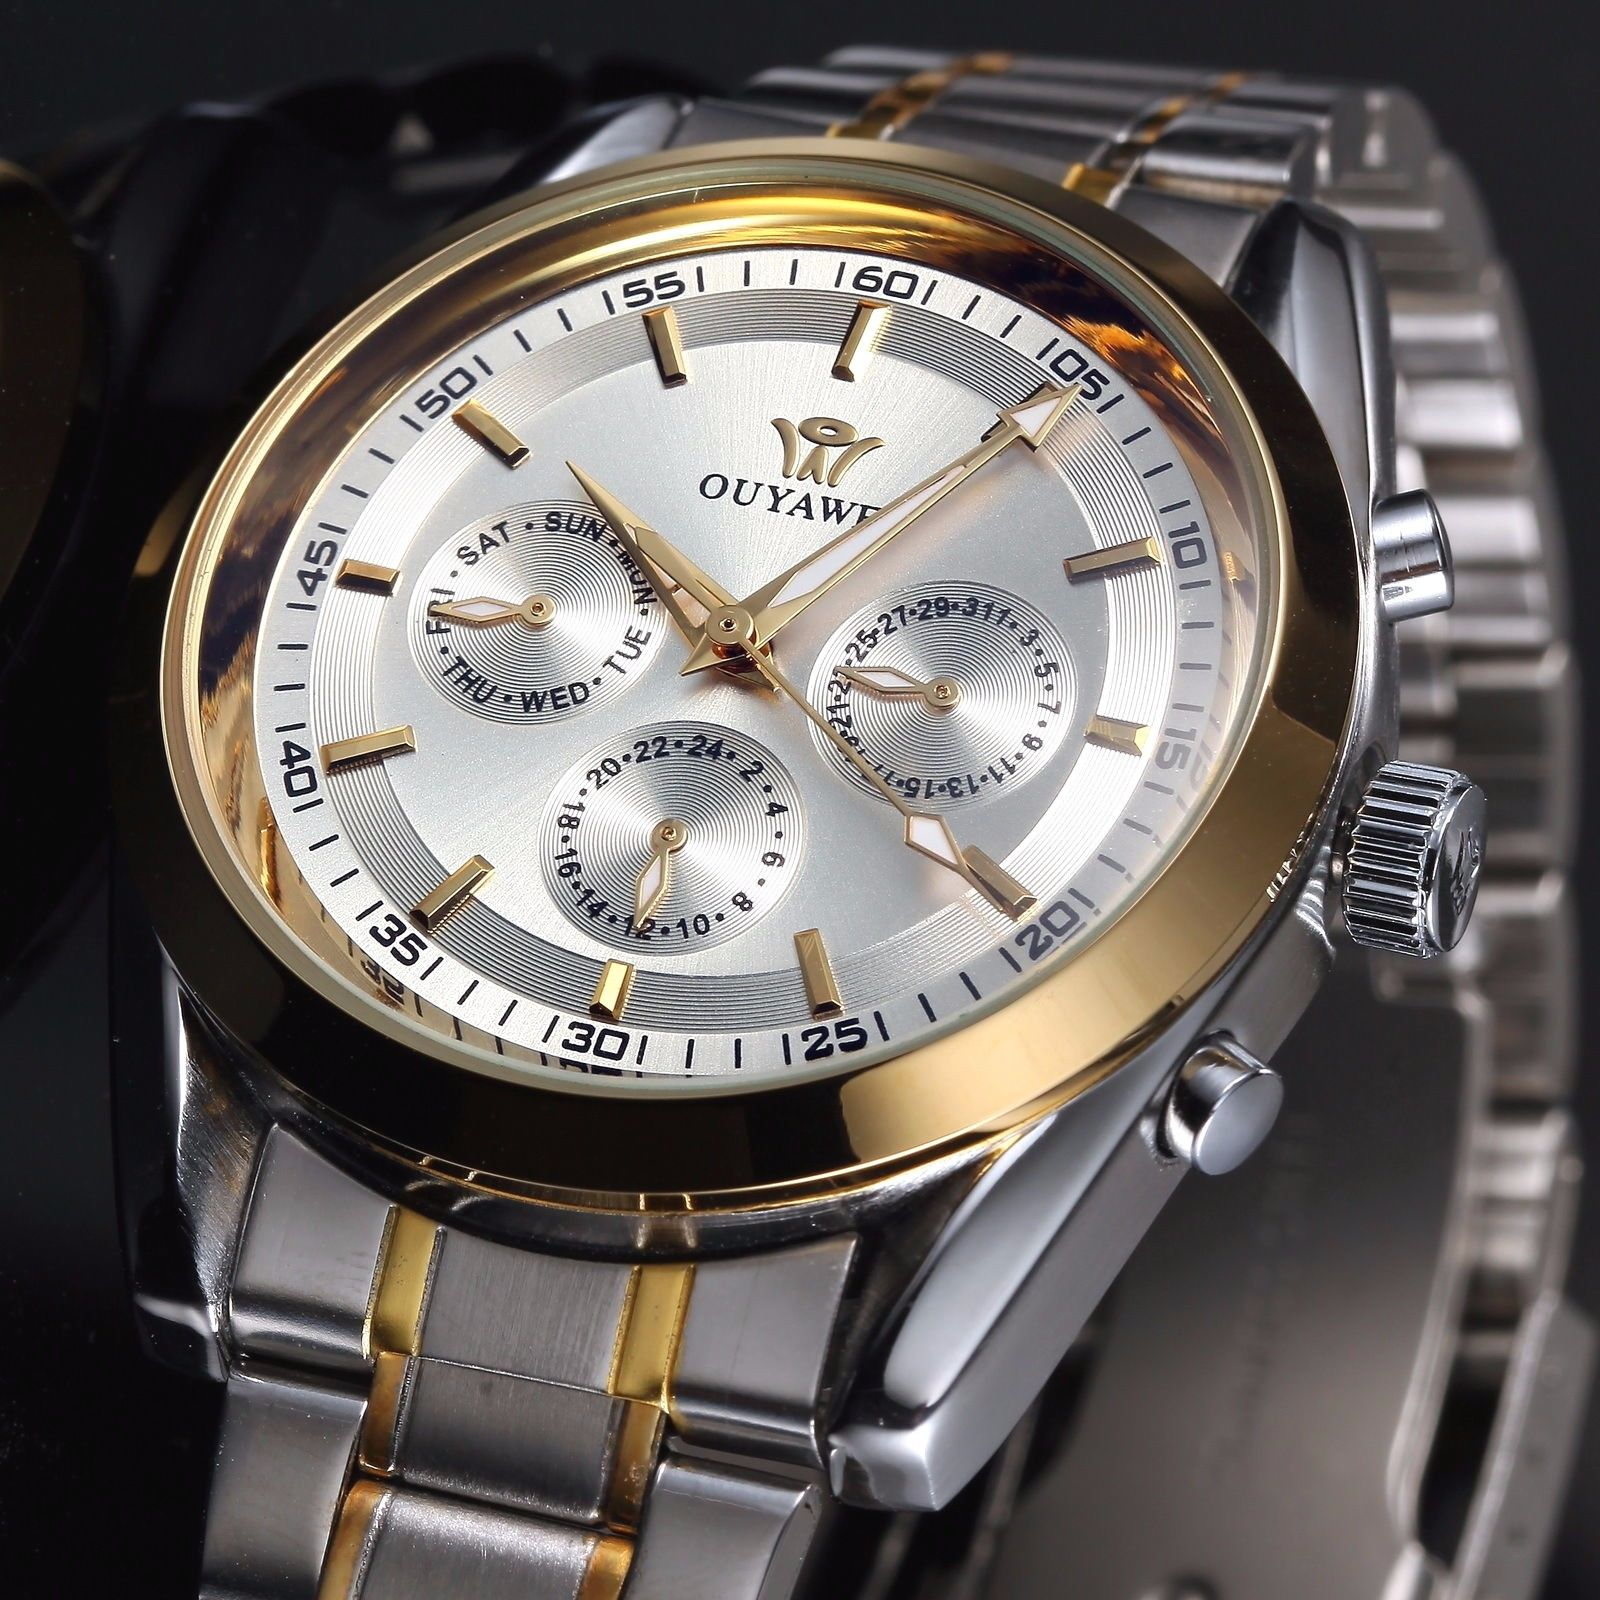 ФОТО Analog Watch for Men Clock New Mechanical Automatic Watch Montre Pour Homme de Marques Date  Stainless Steel Band Wrist Watch